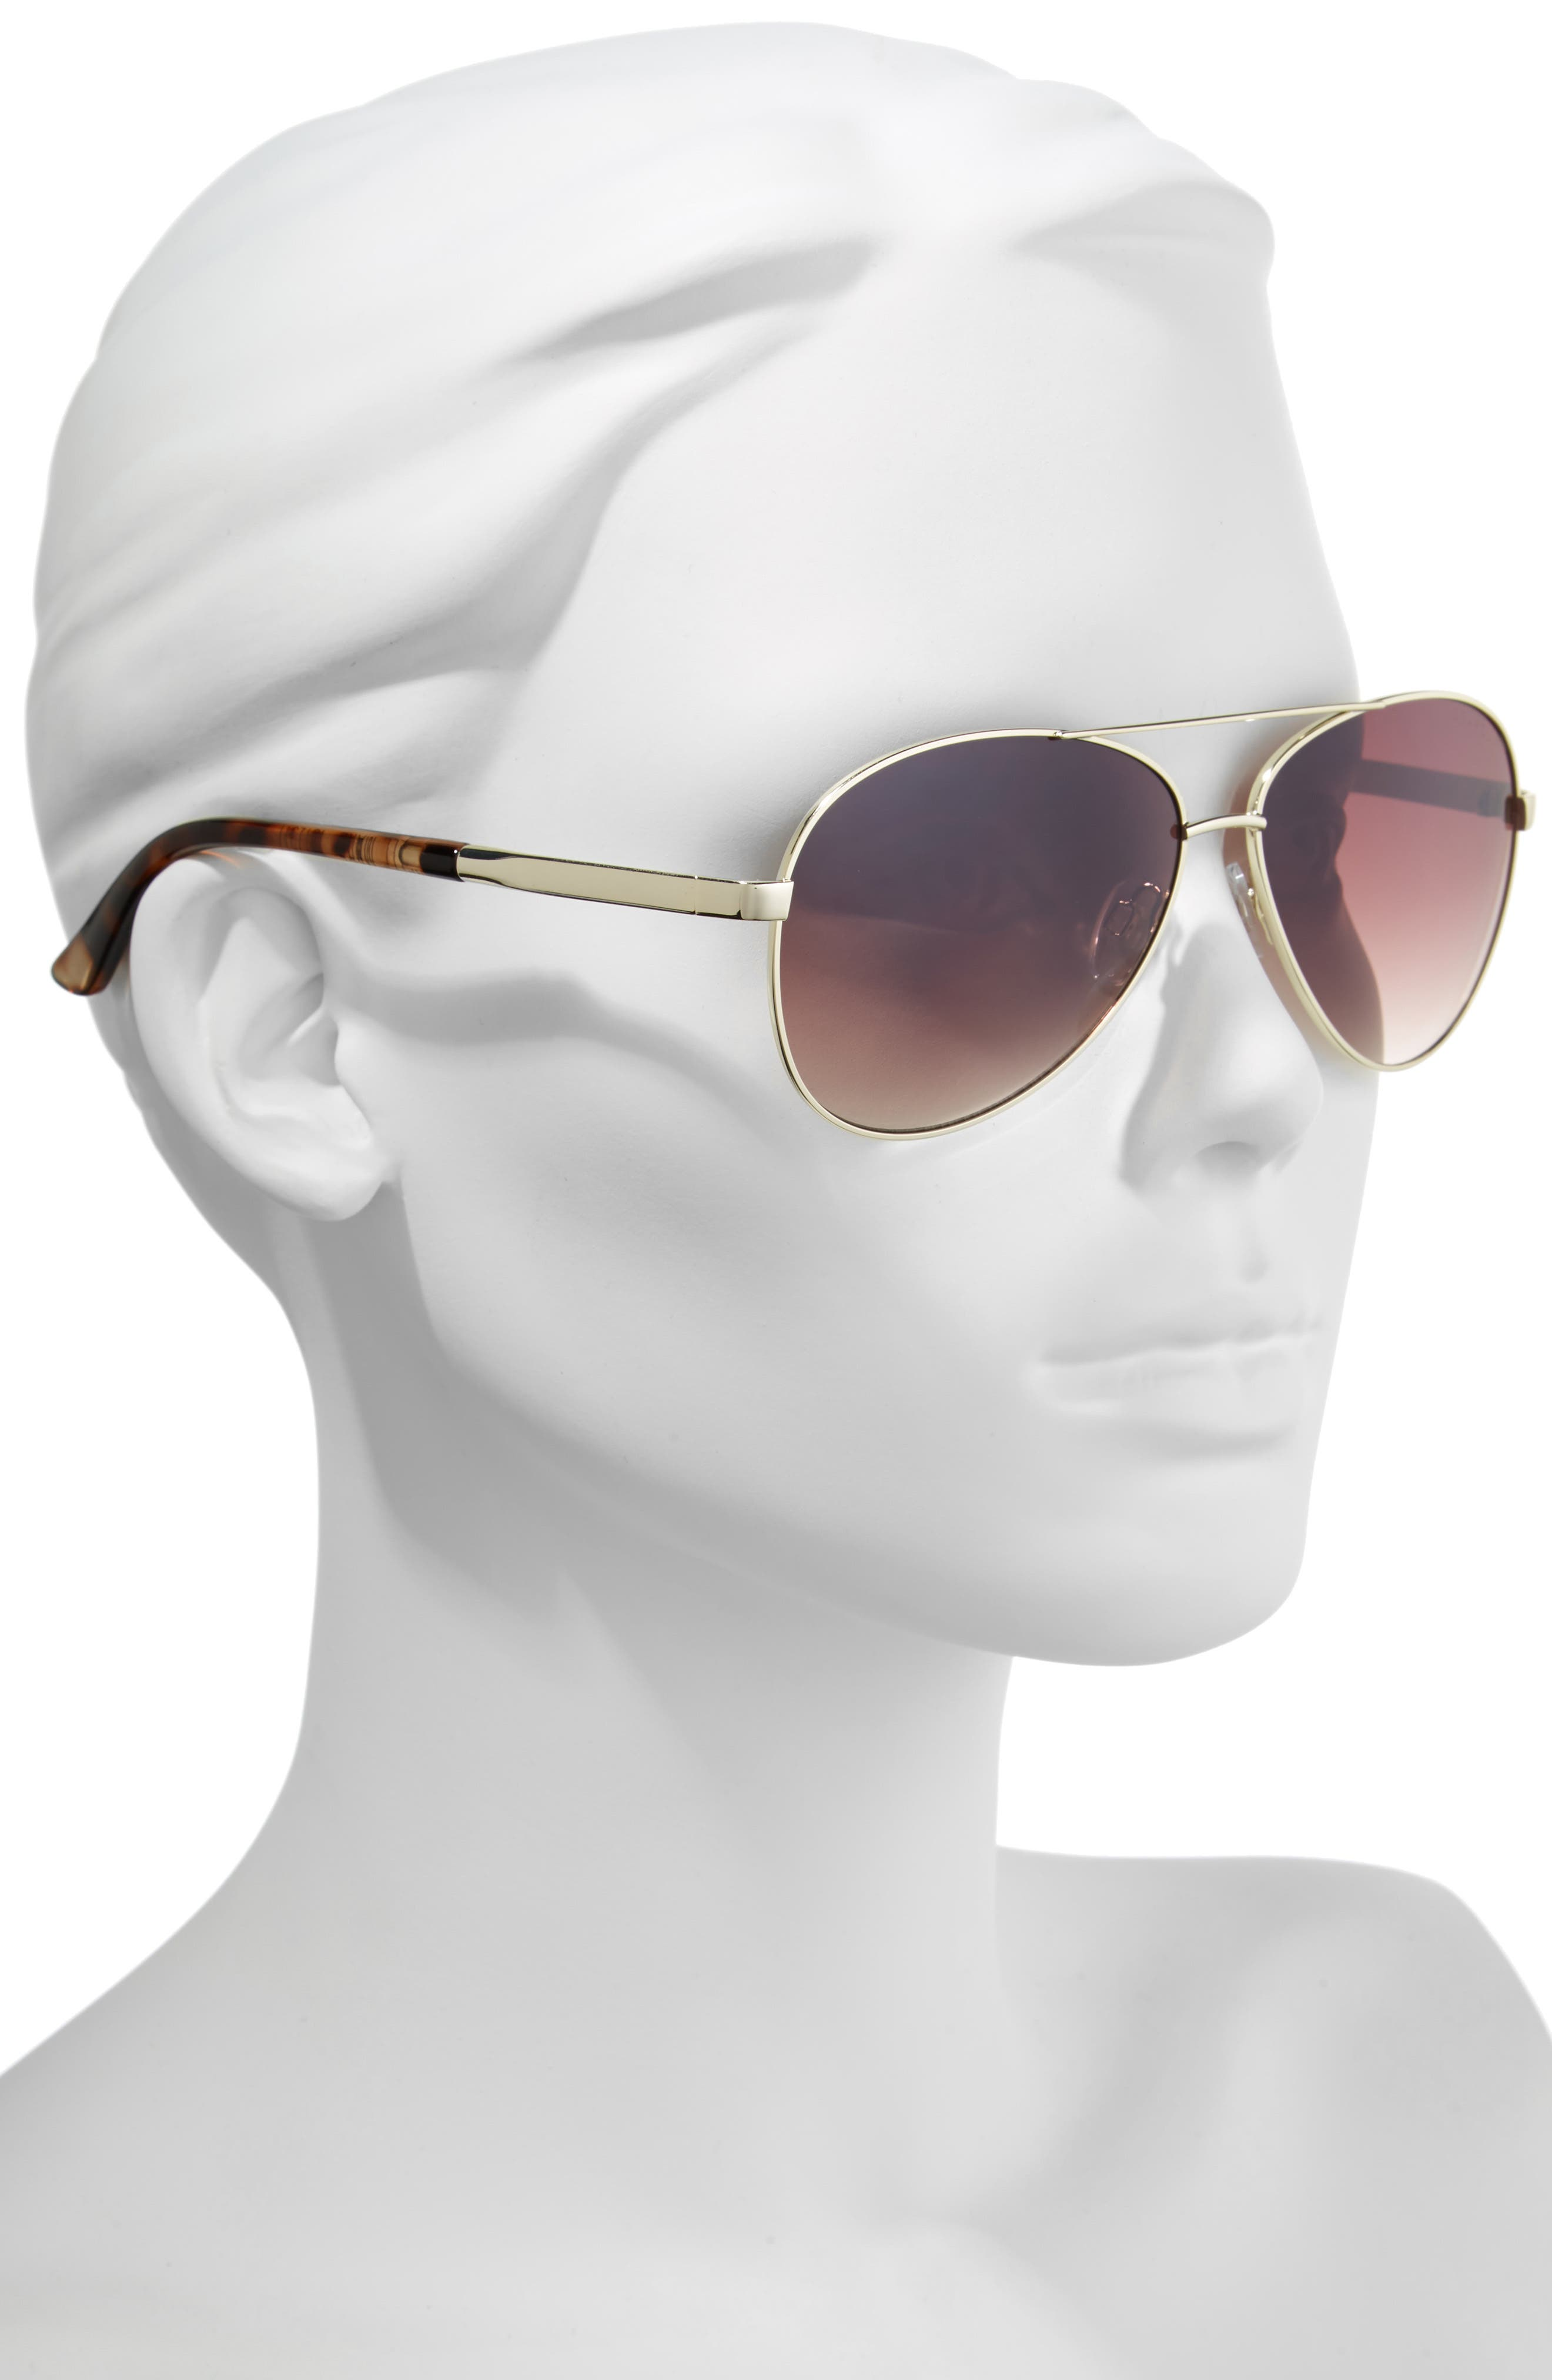 Belle Mare 54mm Aviator Sunglasses,                             Alternate thumbnail 2, color,                             GOLD